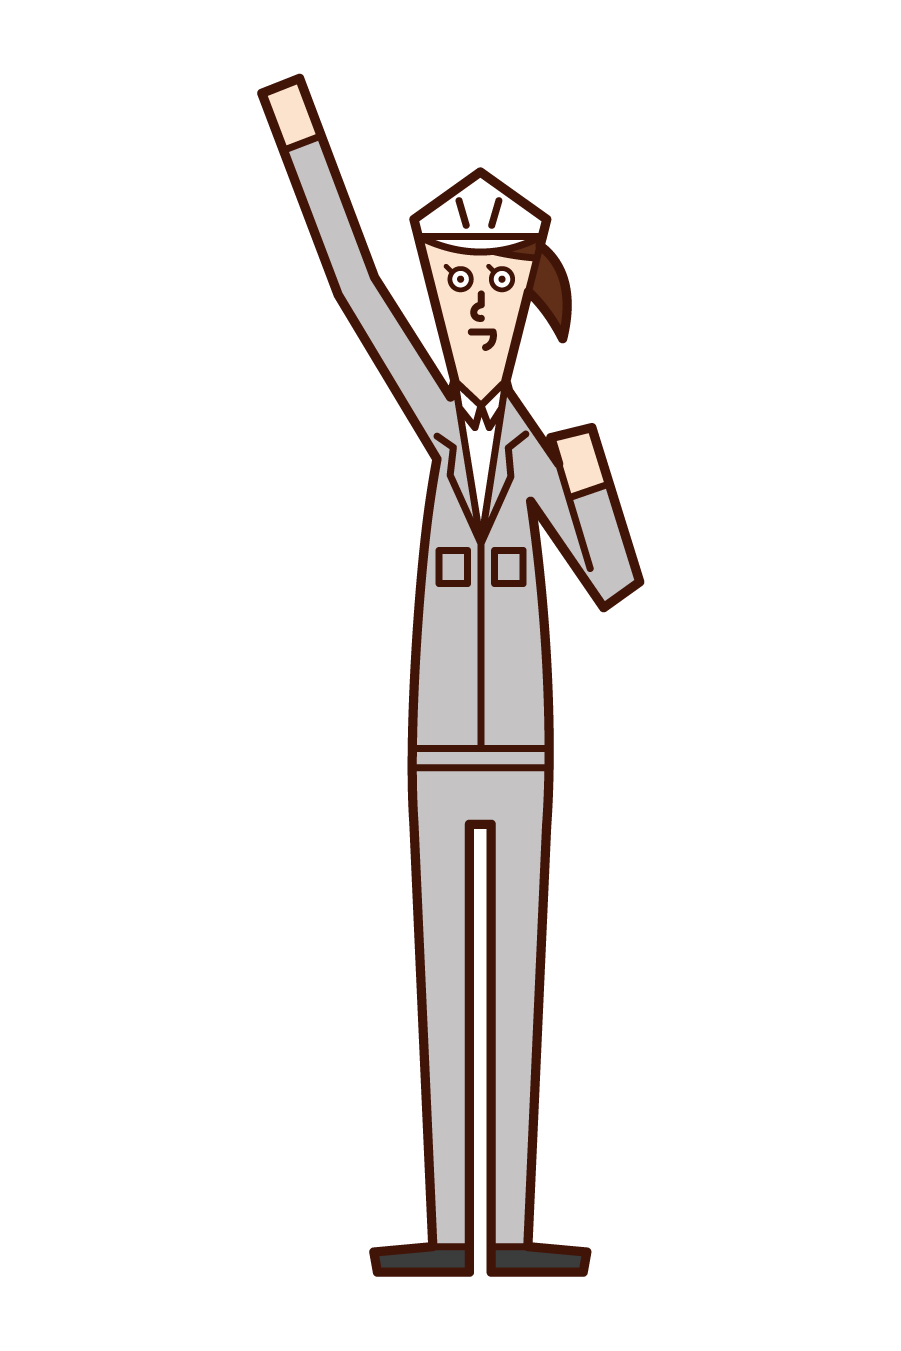 Illustration of Aei-O (woman), a field supervisor who raises her fist high